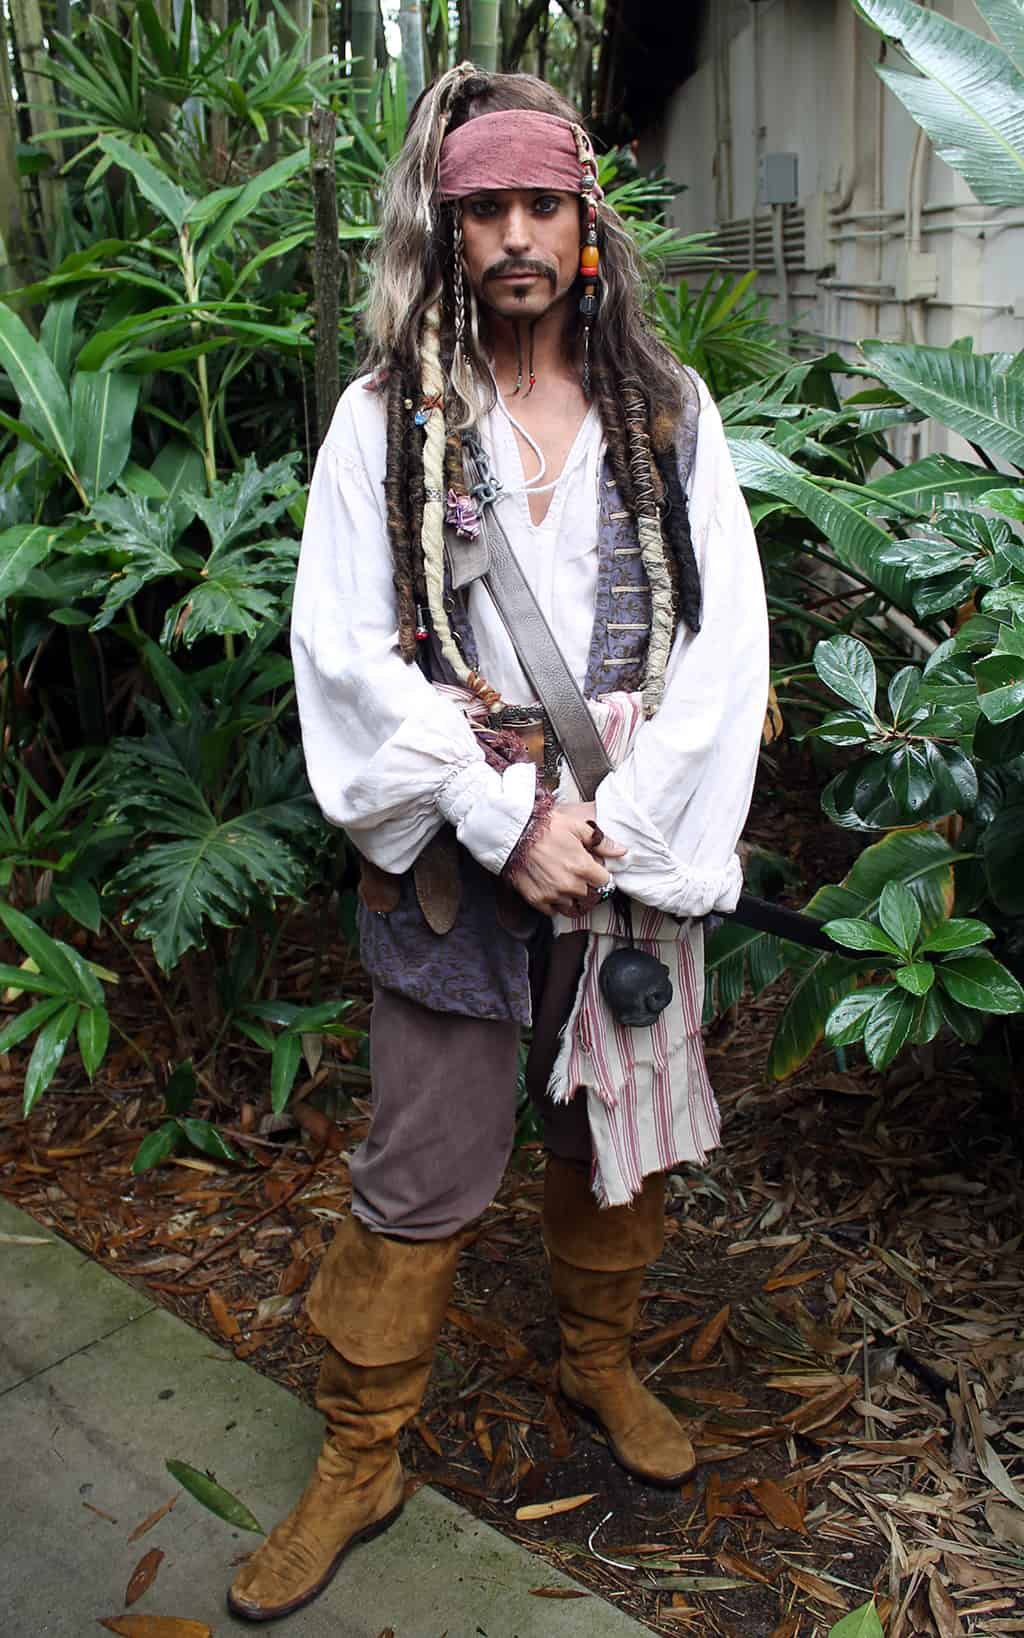 Limited Time Magic Pirates Week Jack Sparrow